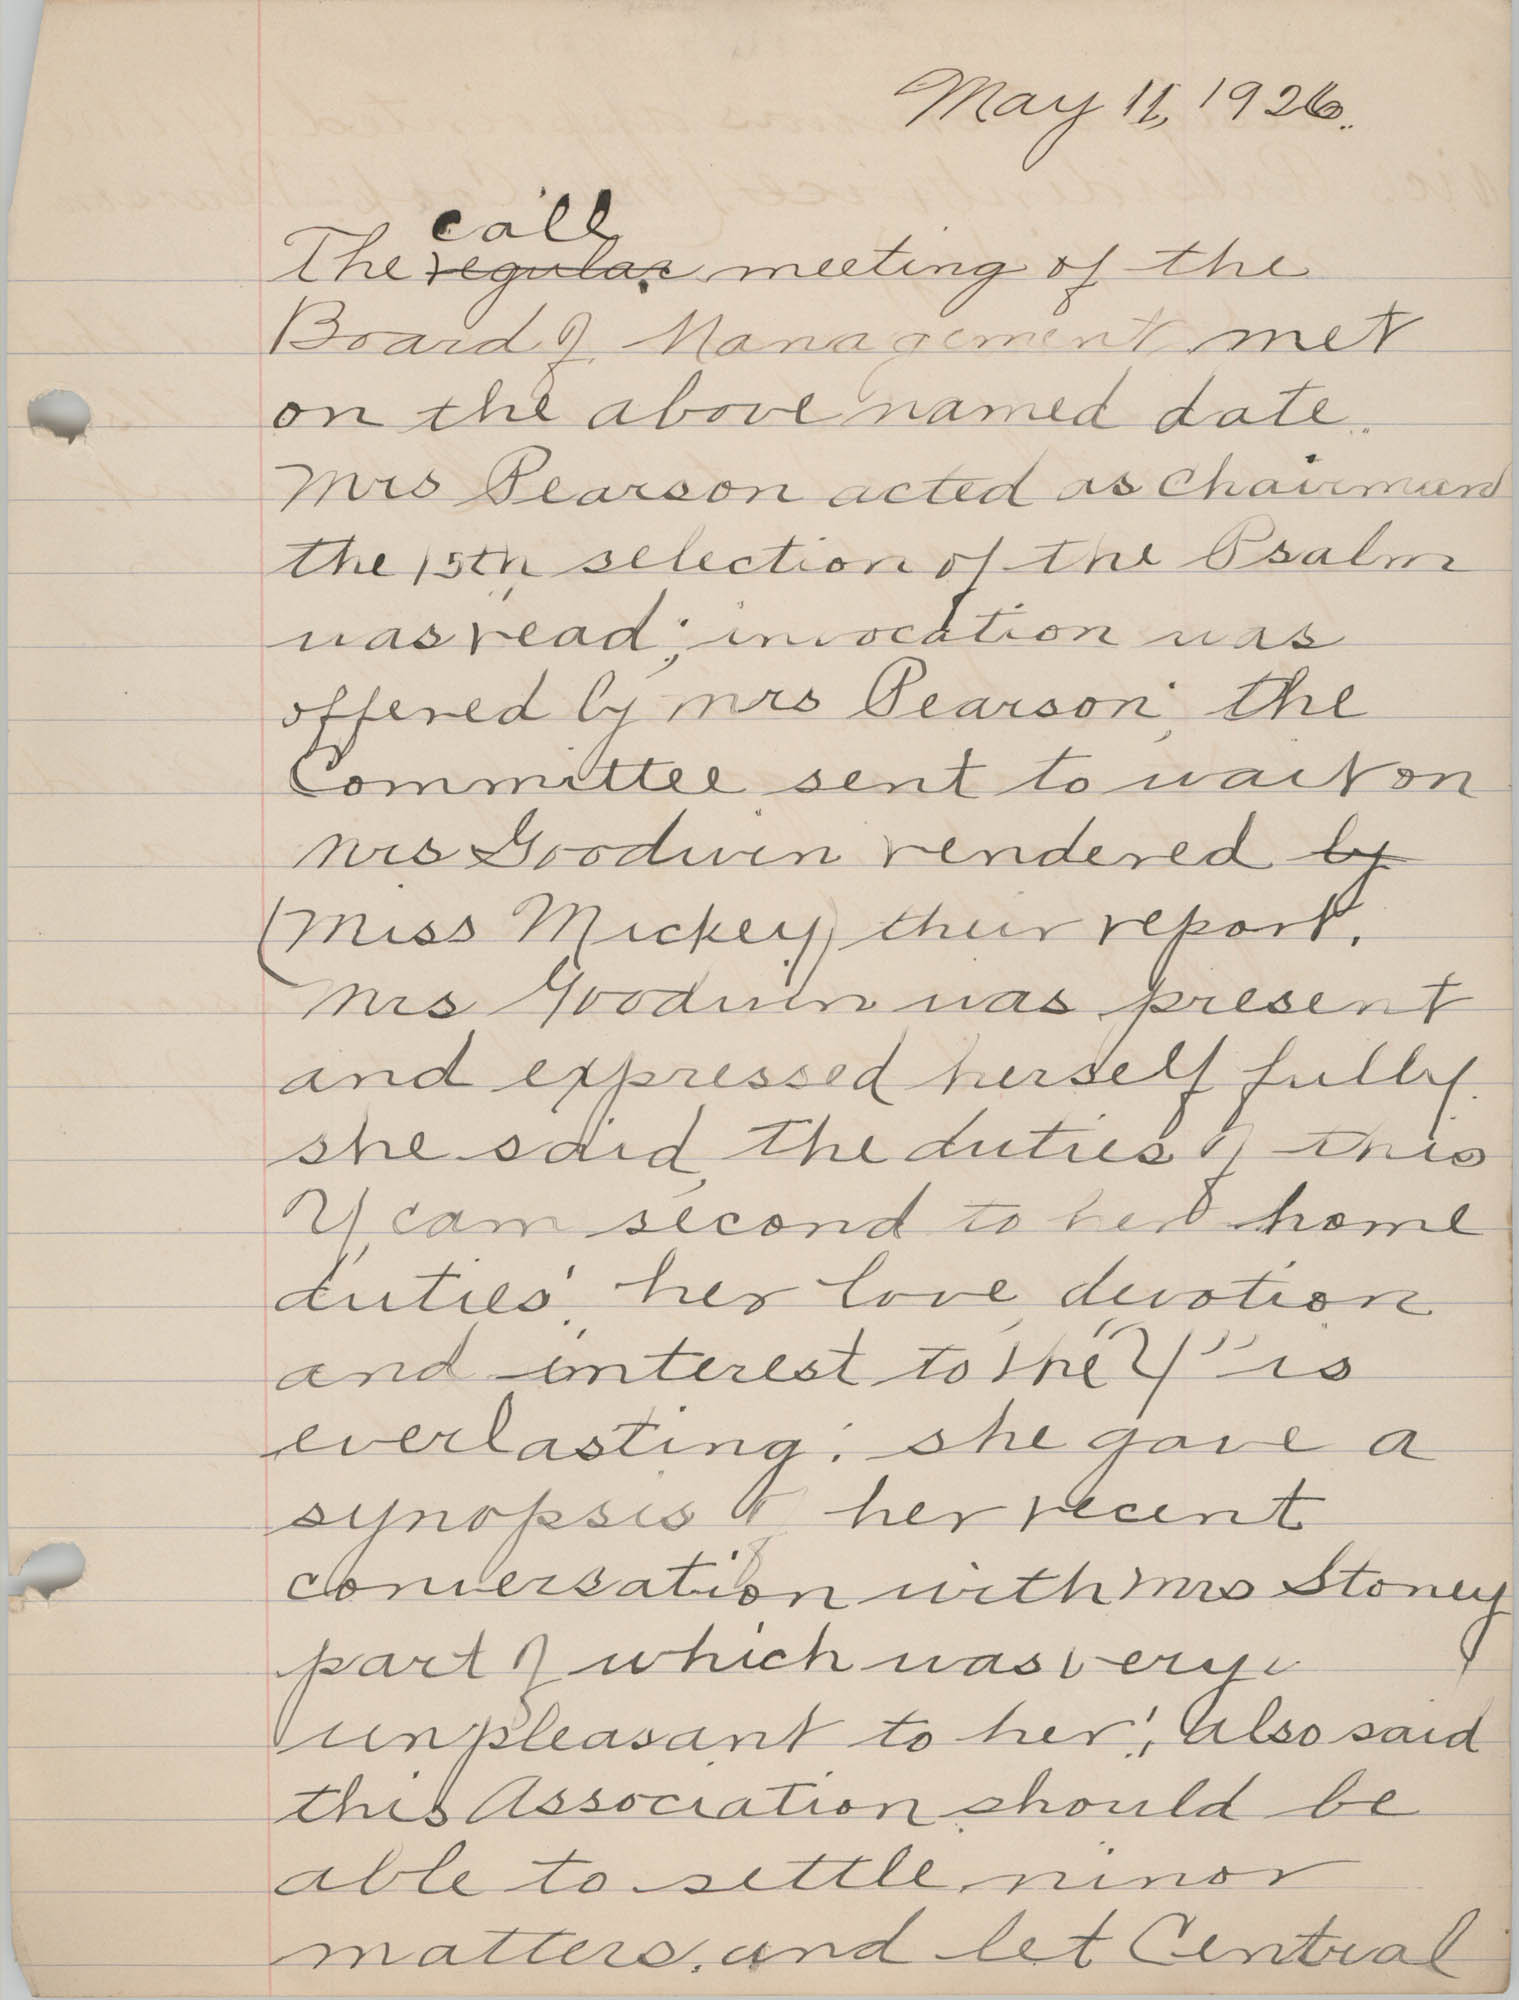 Minutes to the Board of Management, Coming Street Y.W.C.A., May 11, 1926